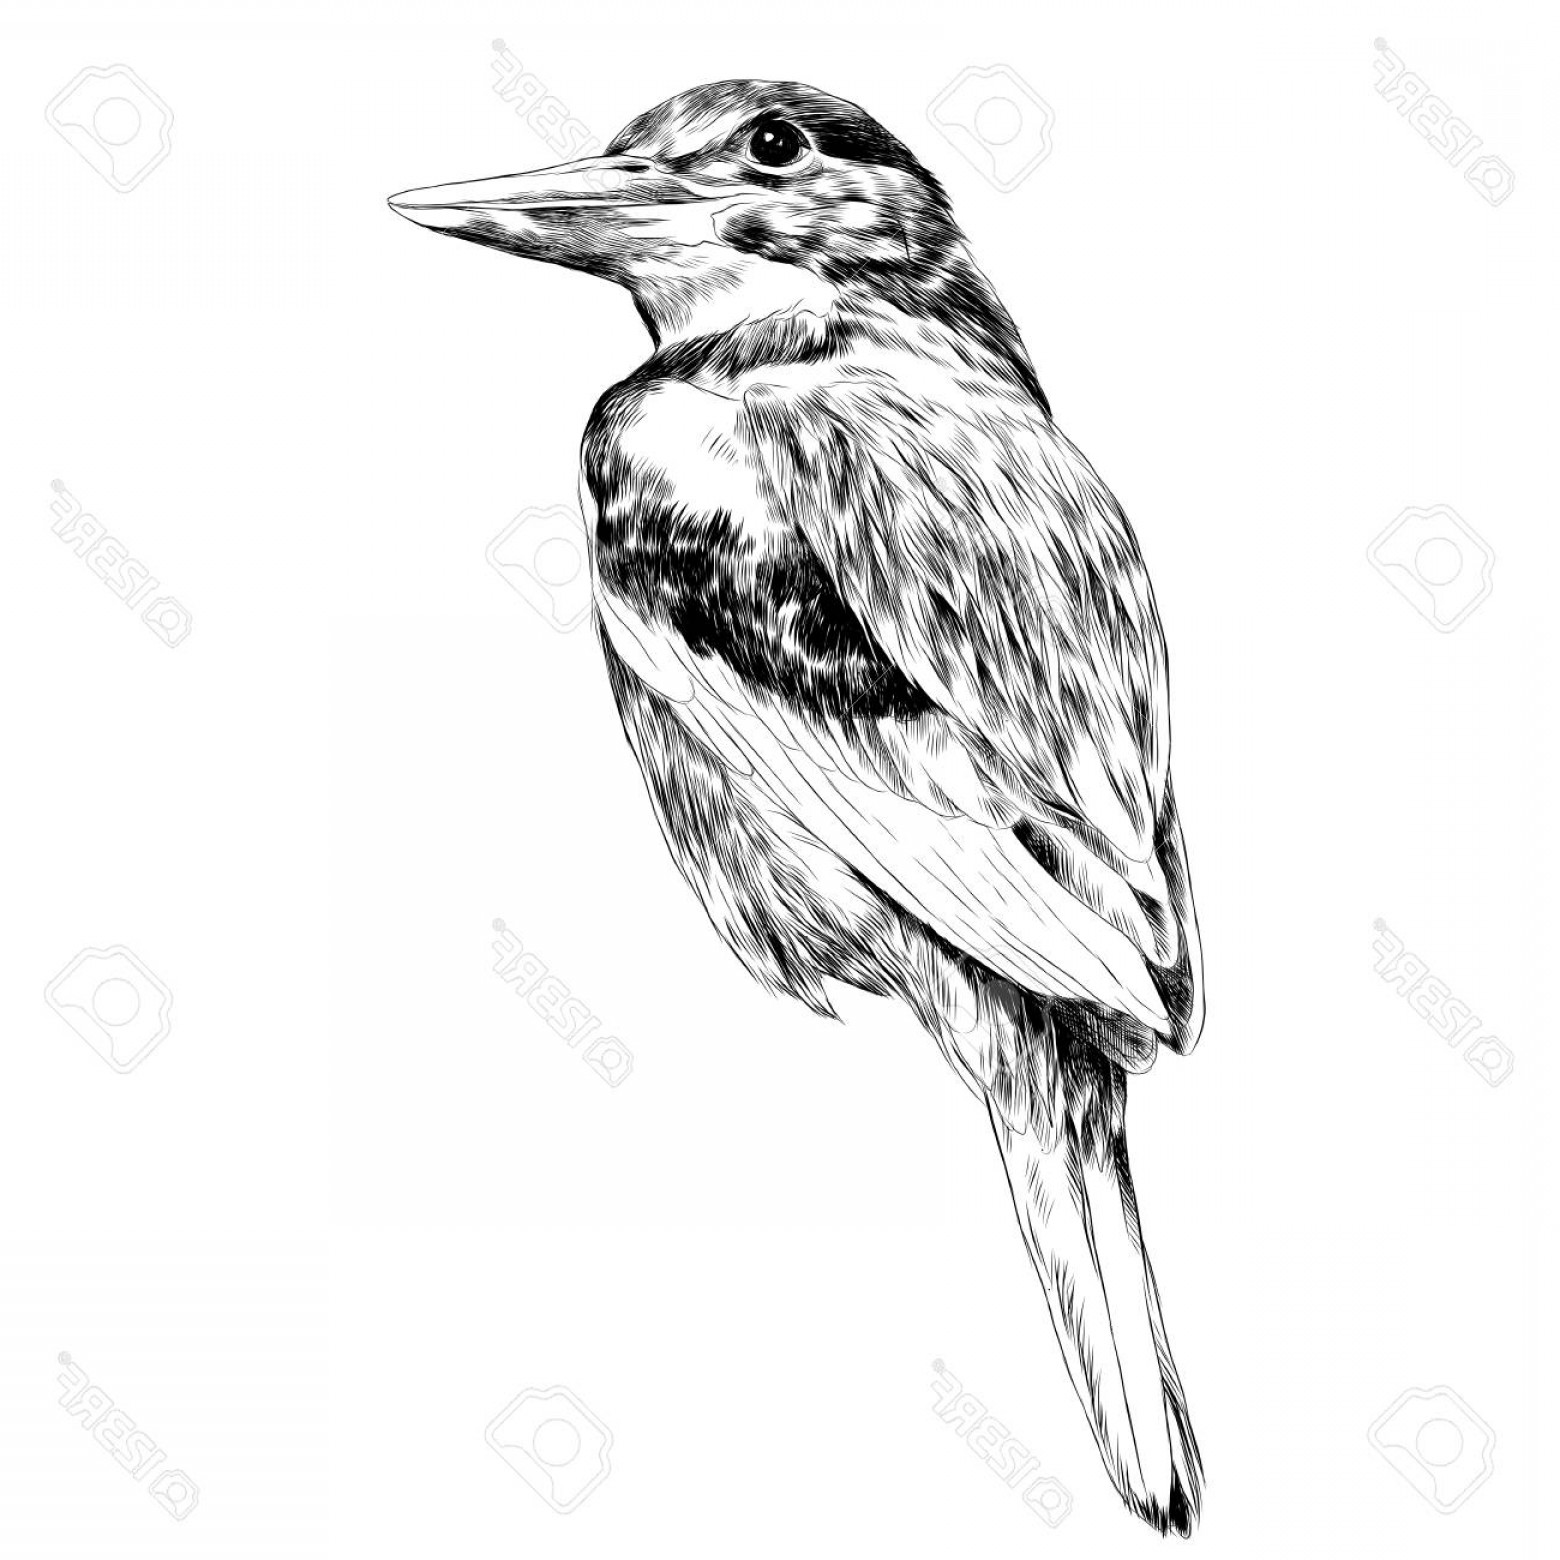 Black And White Bird Free Vector Graphics: Photostock Vector Bird Alcyone Sketch Vector Graphics Black And White Drawing